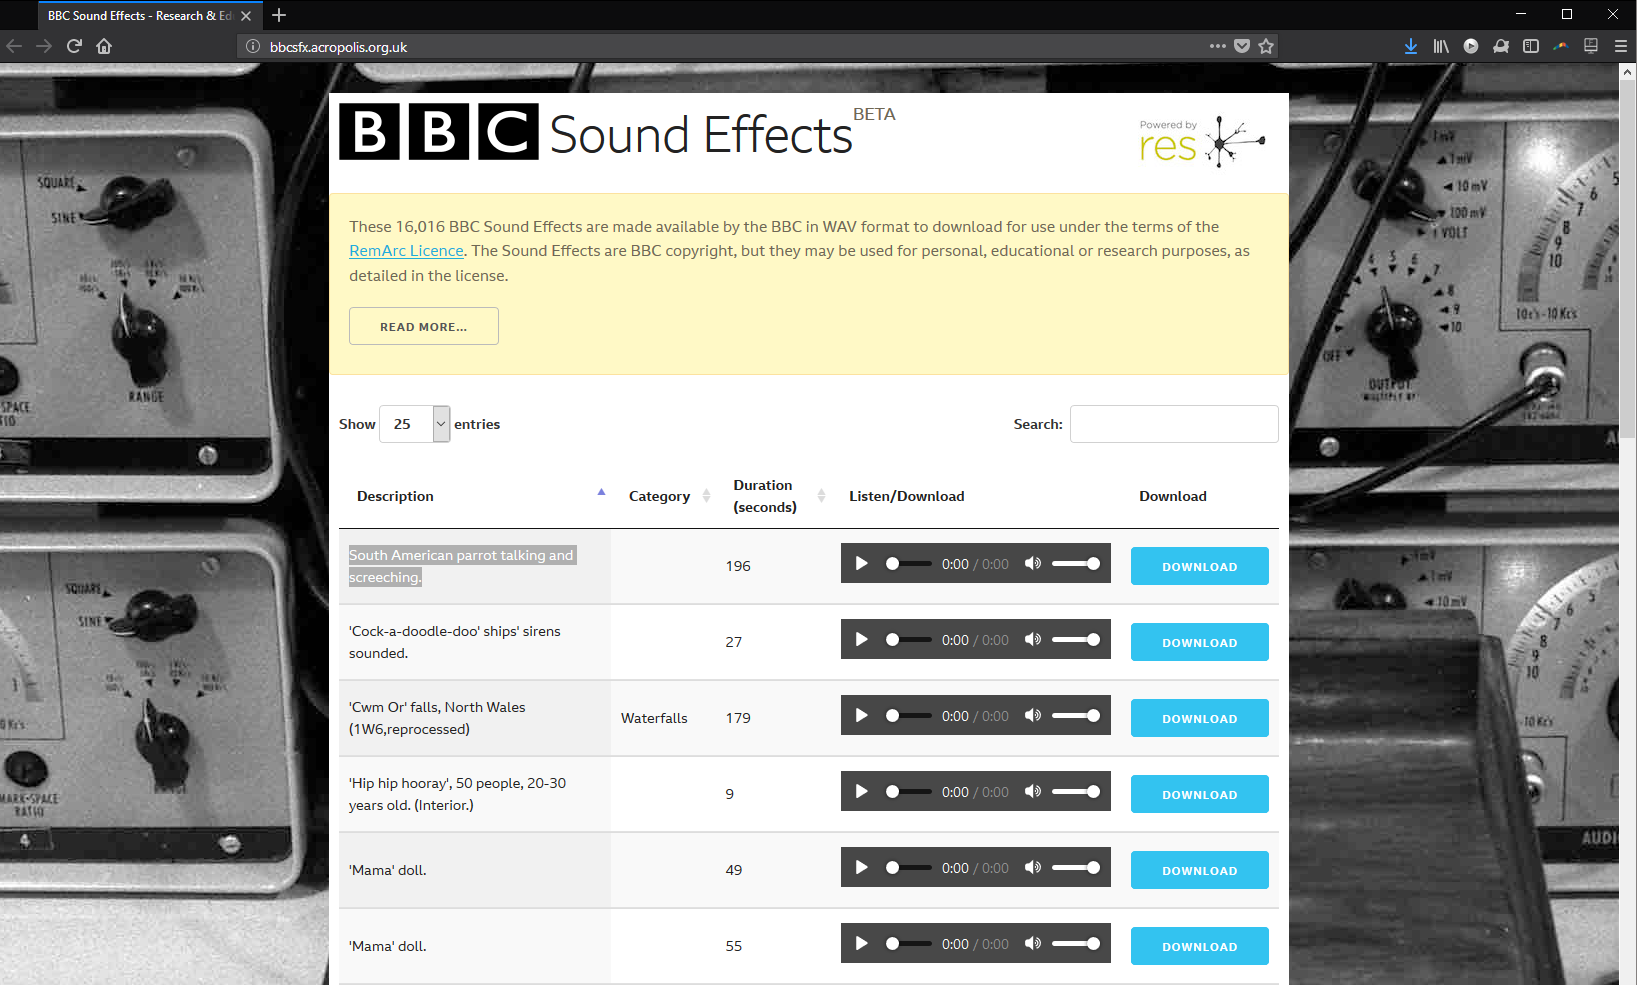 BBC gives away 16k WAV sound effects, but disallows some uses - CDM